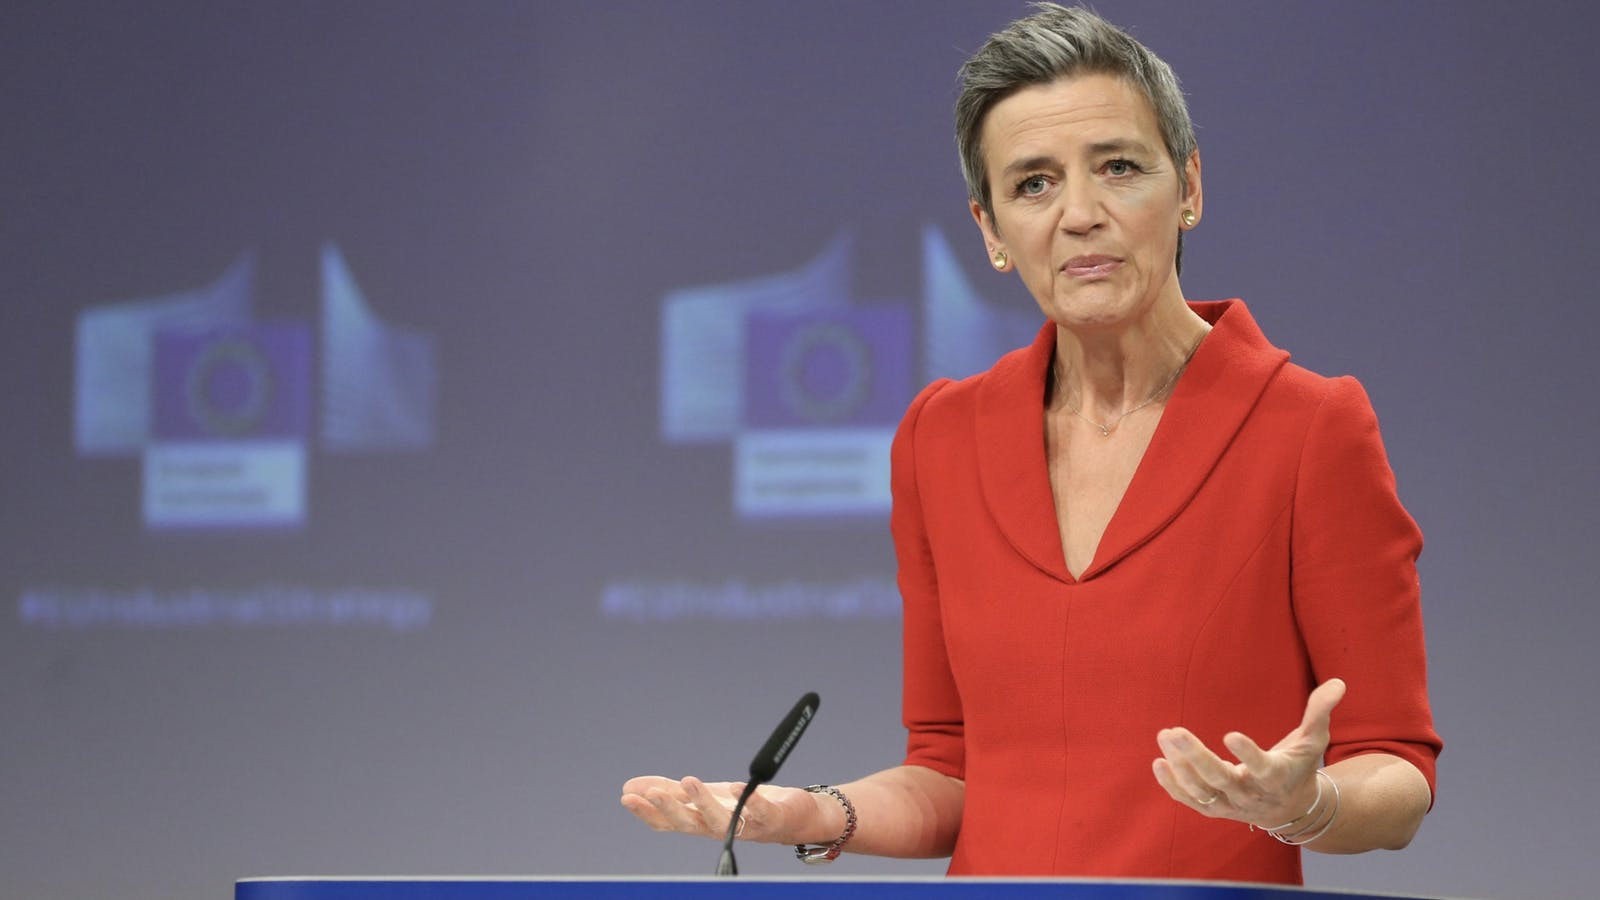 European Commissioner competition commissioner Margrethe Vestager. Photo by Bloomberg.